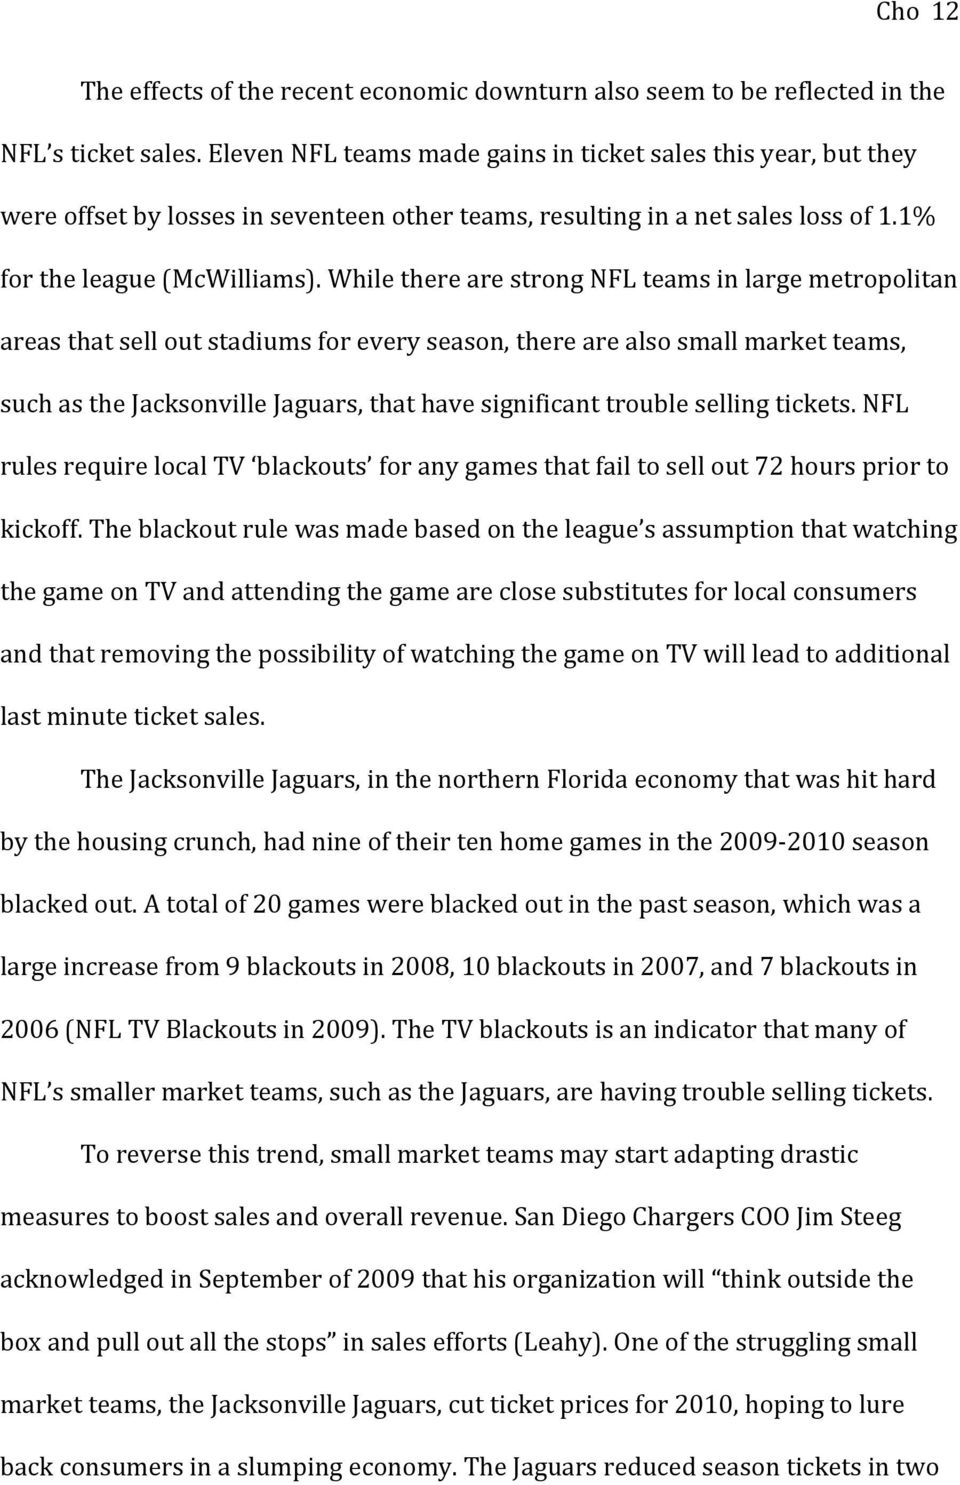 While there are strong NFL teams in large metropolitan areas that sell out stadiums for every season, there are also small market teams, such as the Jacksonville Jaguars, that have significant